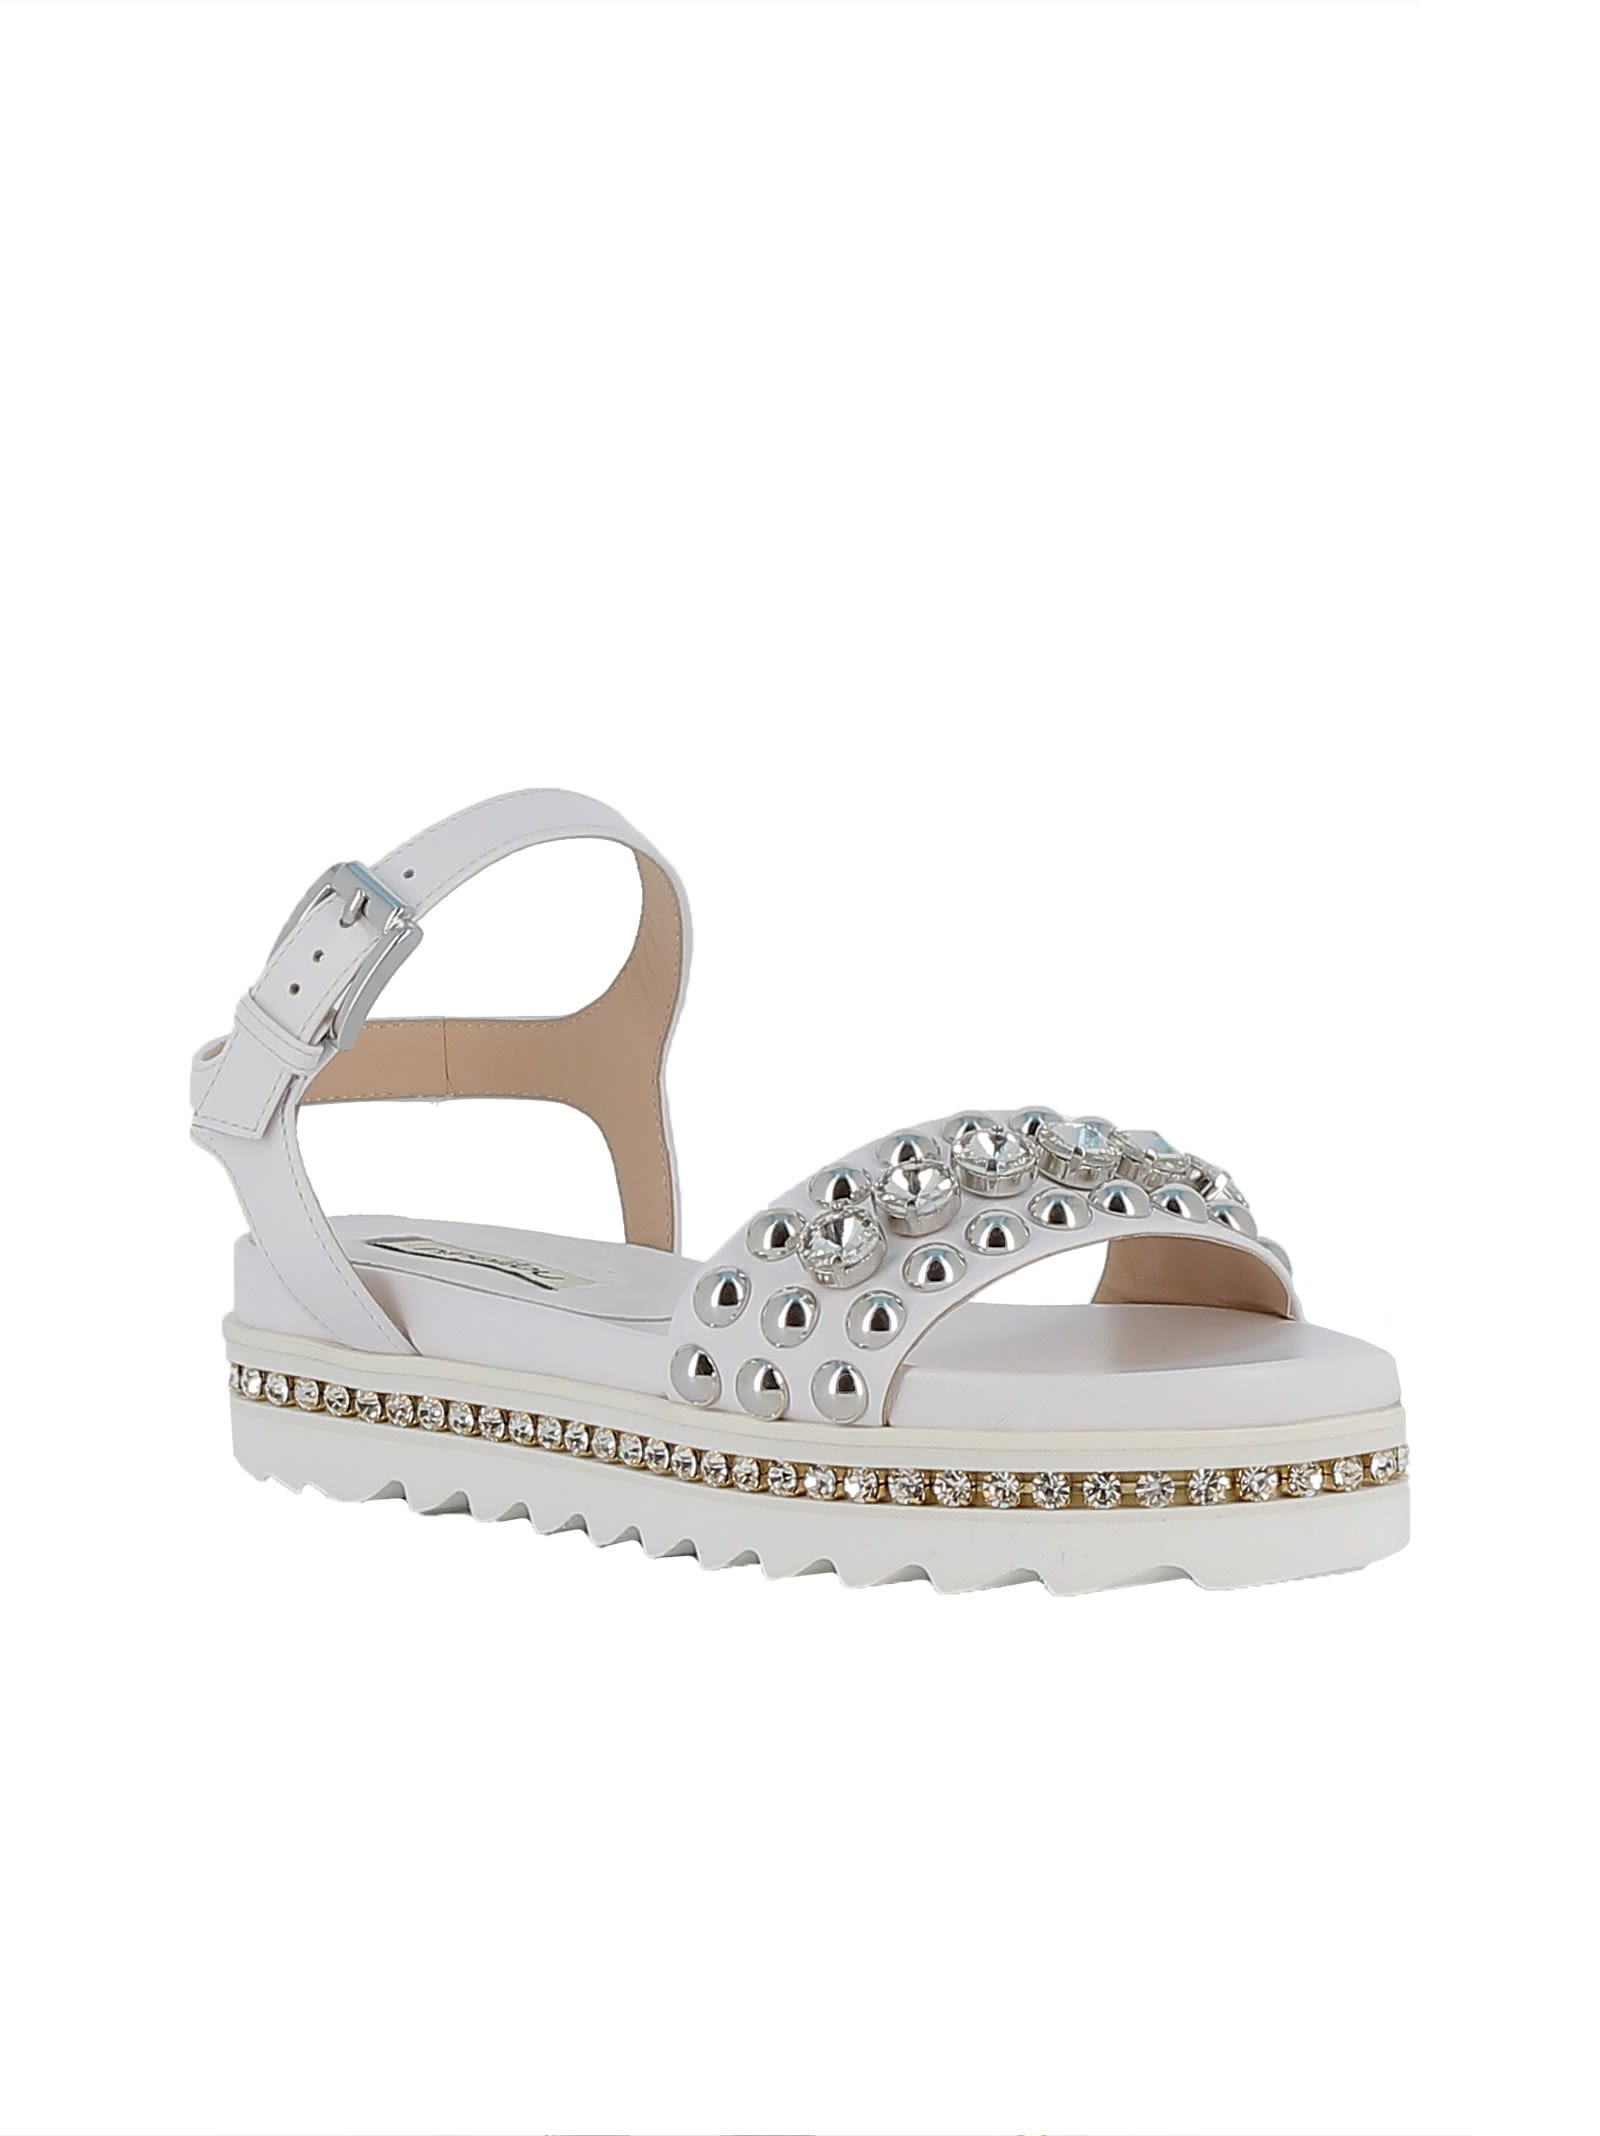 NINALILOU Leather Sandals Sale Huge Surprise Outlet How Much Wholesale Price Sale Online oo1A1w